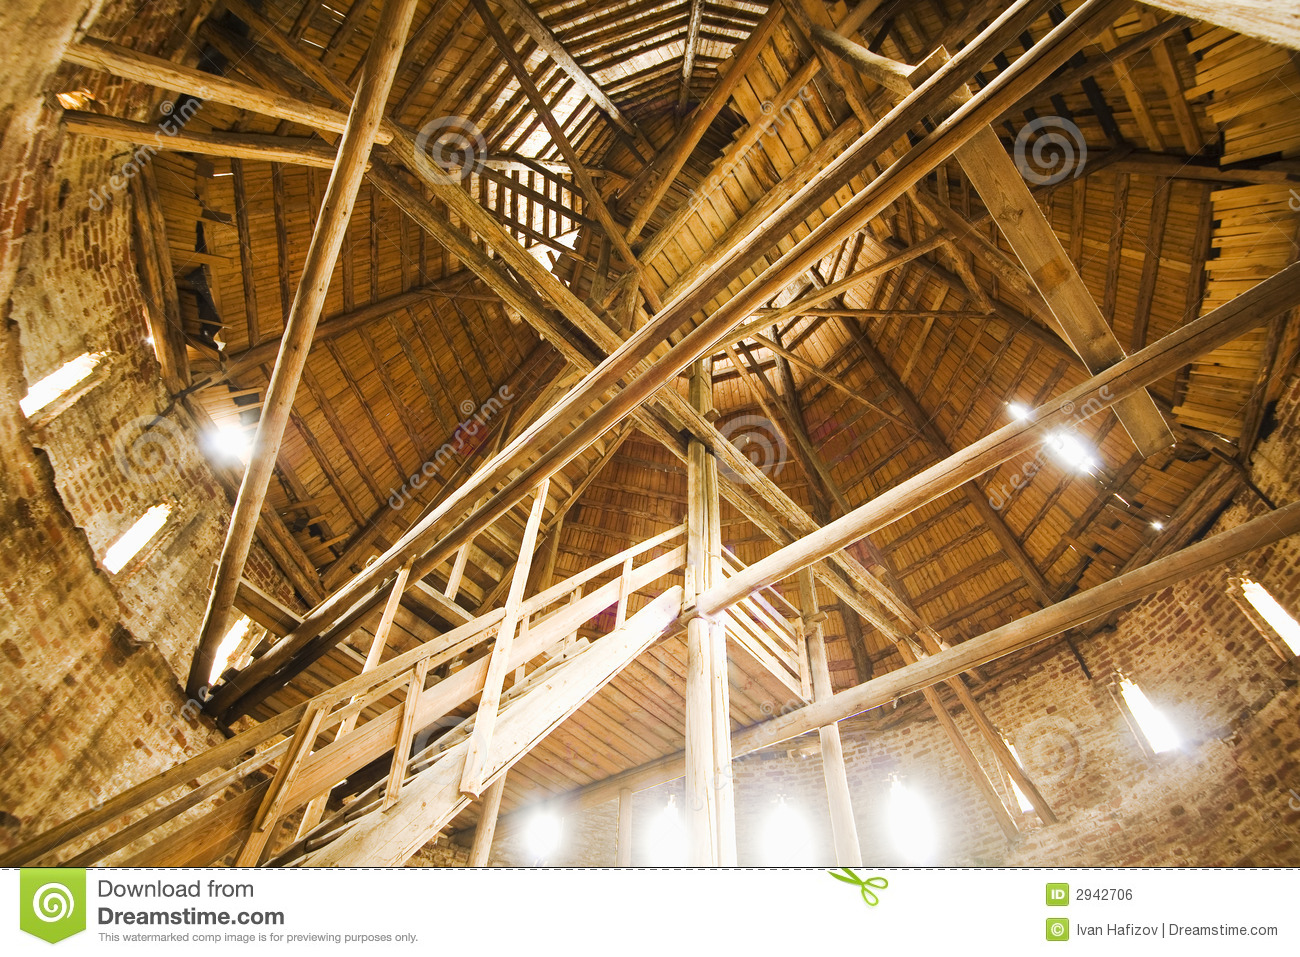 Wood Interior wood interior royalty free stock image - image: 2942706